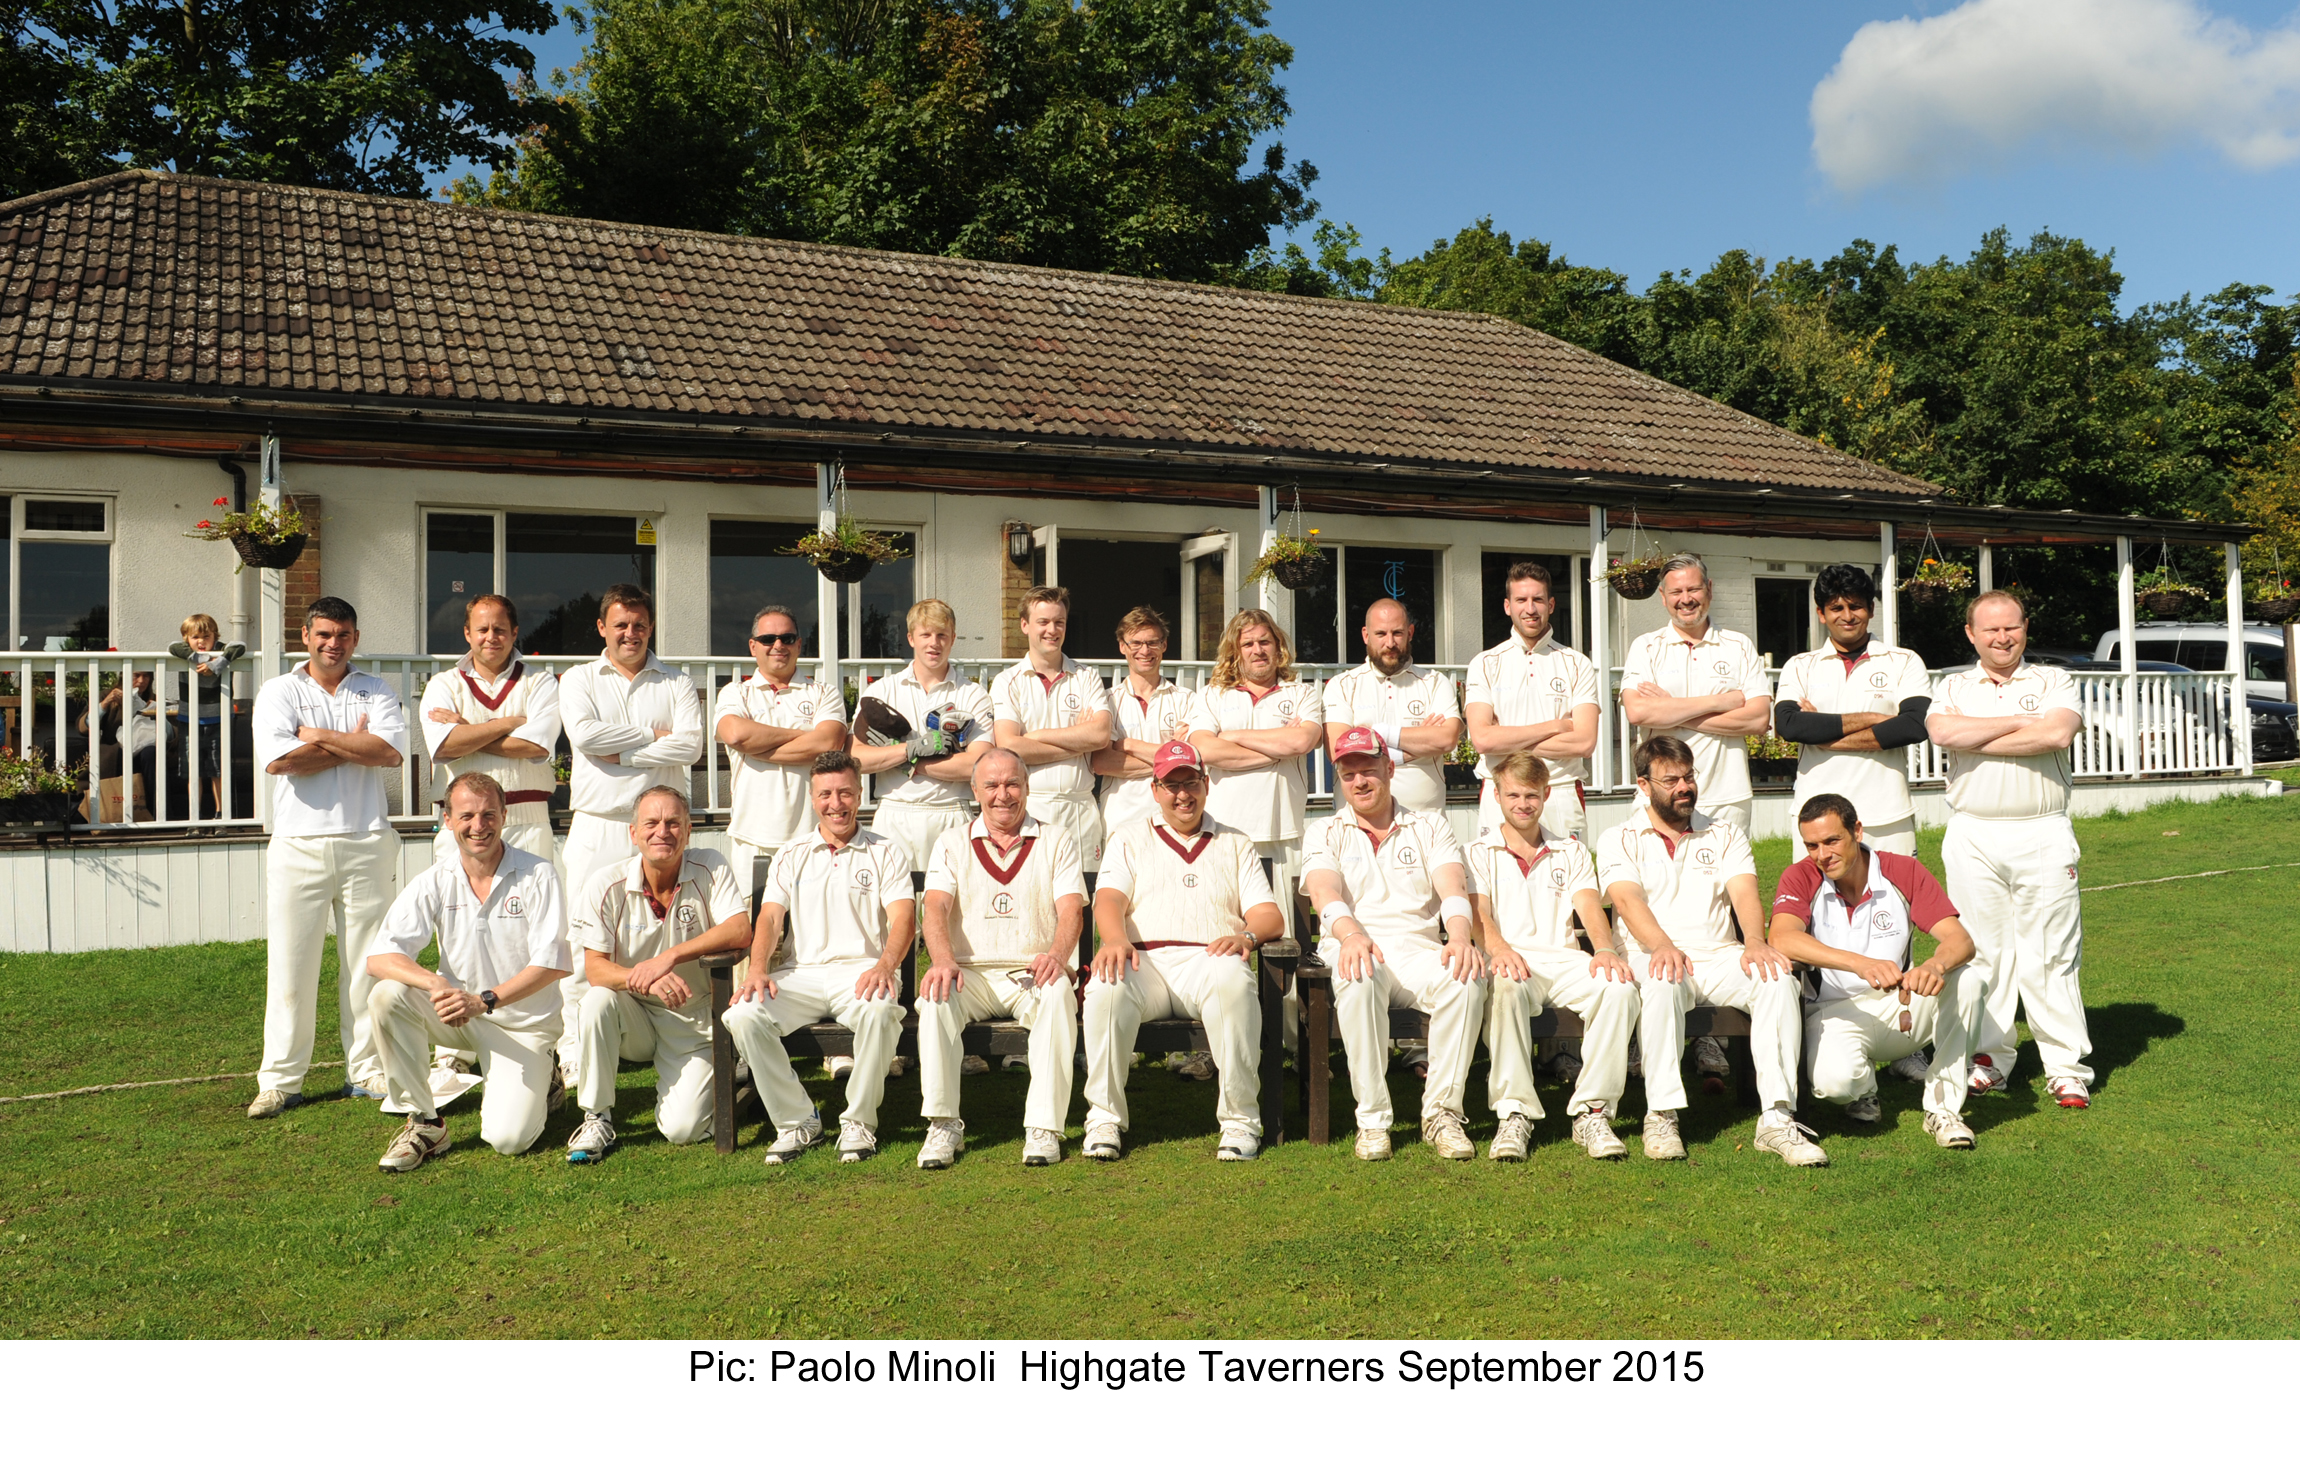 Highgate_Taverners9651